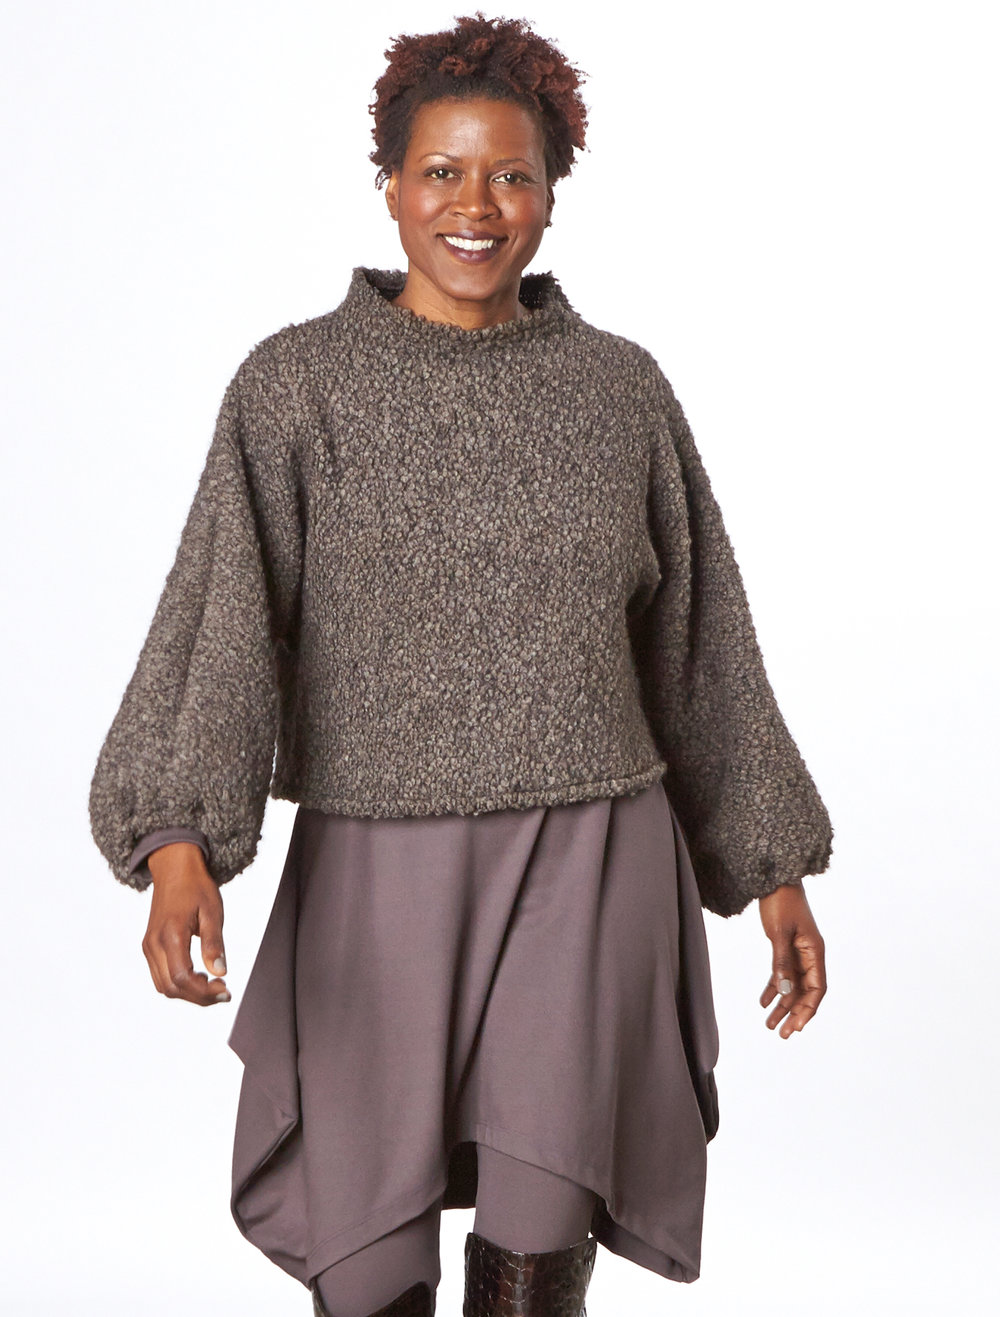 Anna Shirt in Orso Italian Boucle, Chase Tunic, Basic Legging in Mocha Modal Ponti